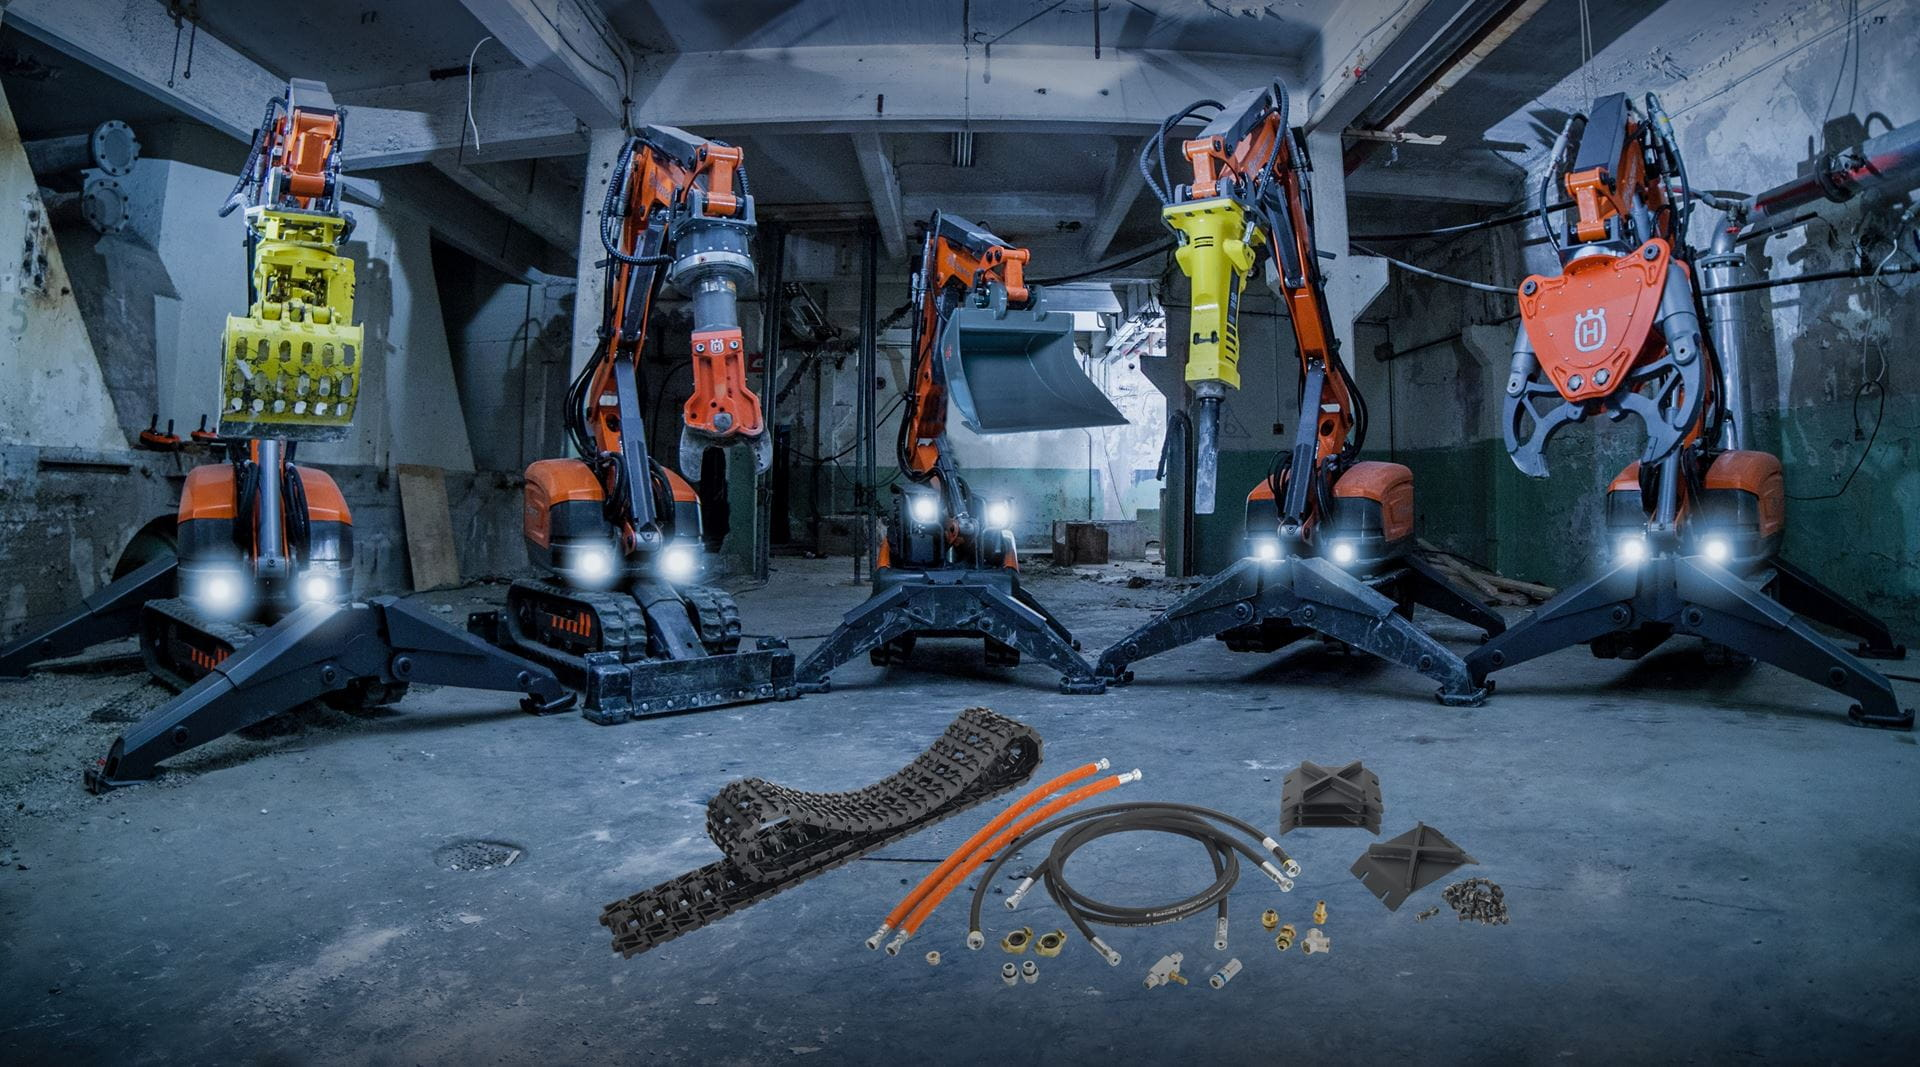 Remote demolition robots from Husqvarna equipped with interchangeable tools for great utility.